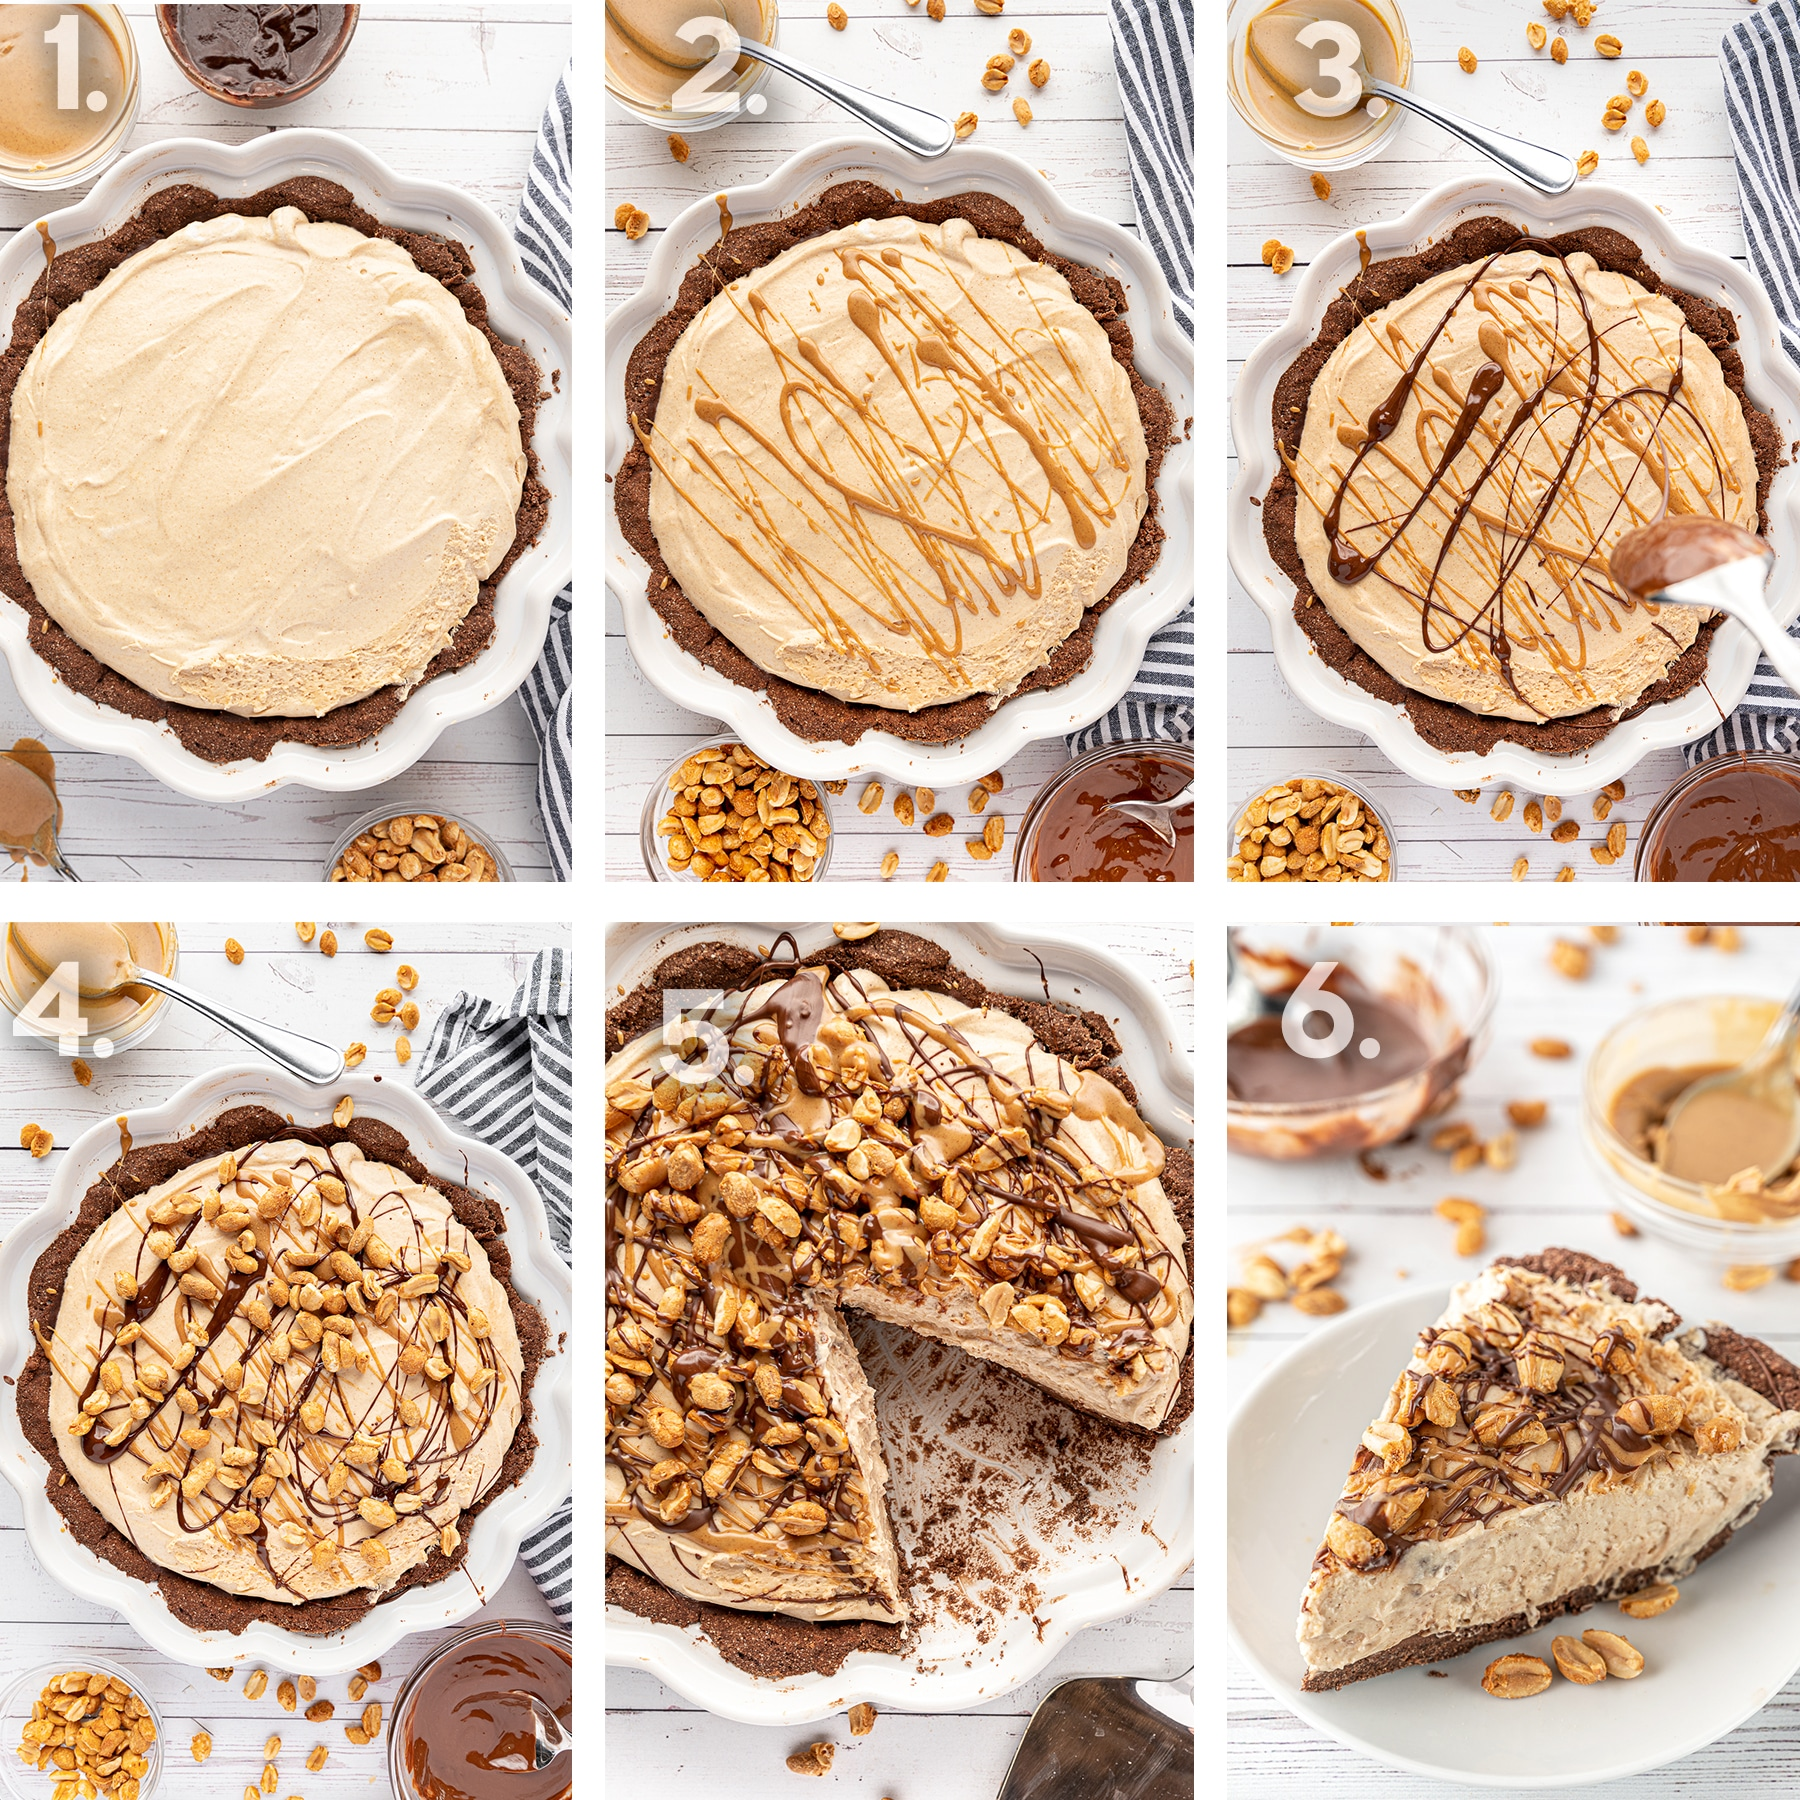 6 panel photograph showing the steps to decorate the top of the peanut butter pie.